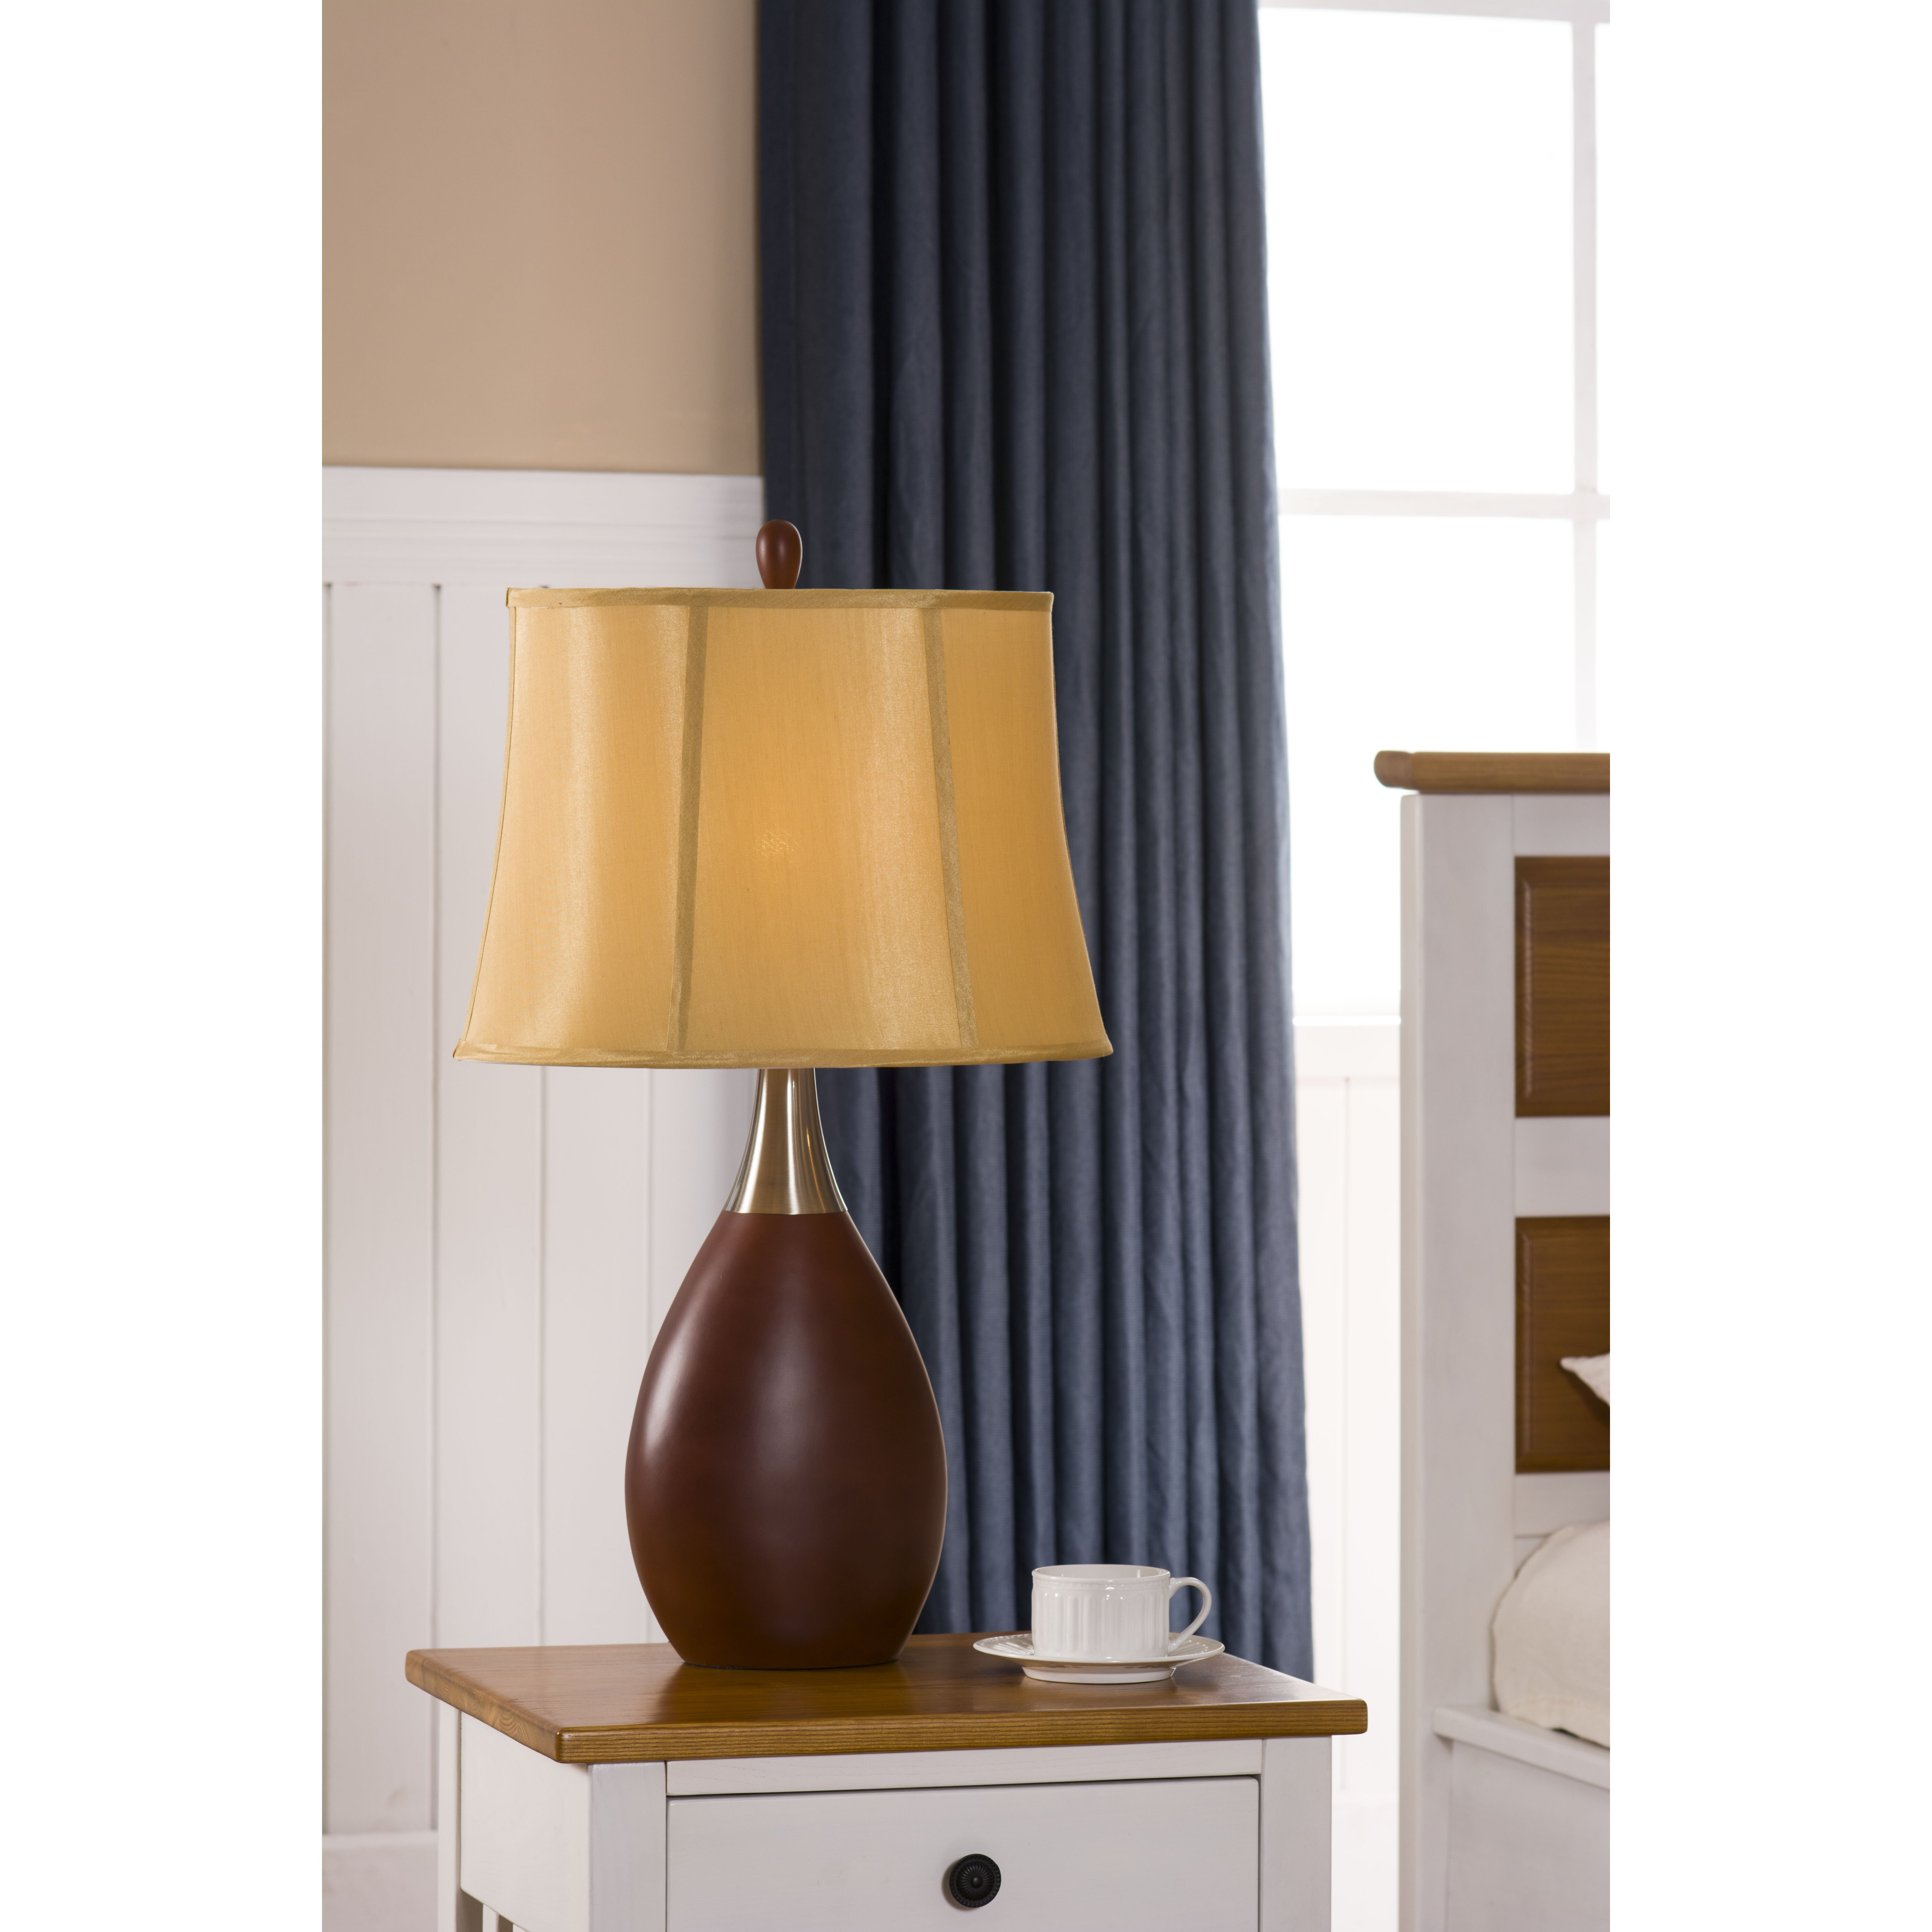 lighting lamps table lamps inroom designs sku ird2261. Black Bedroom Furniture Sets. Home Design Ideas